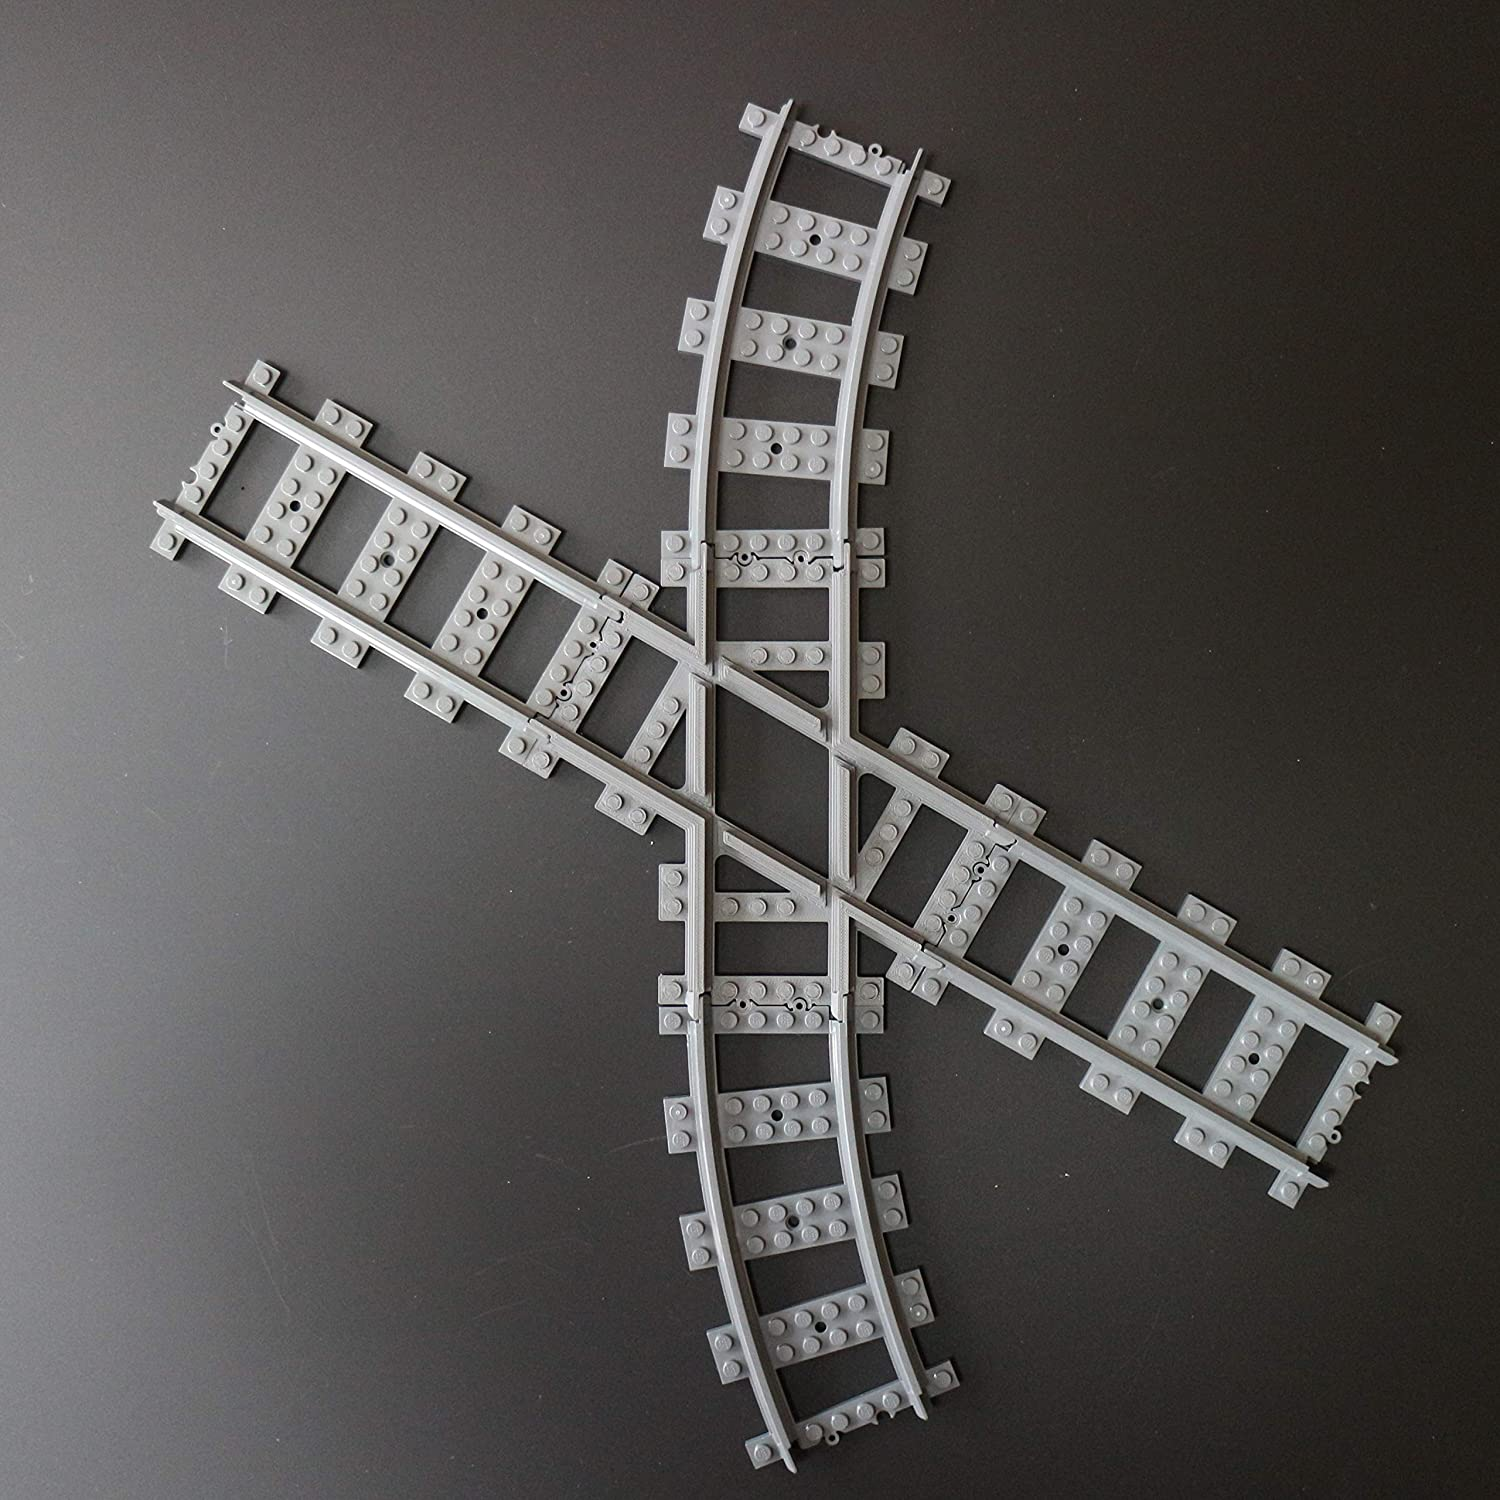 Caterpillar Red Angled Compatible Custom Cross Track Straight Cross Tracks Crossover Compatible with Leading Brand